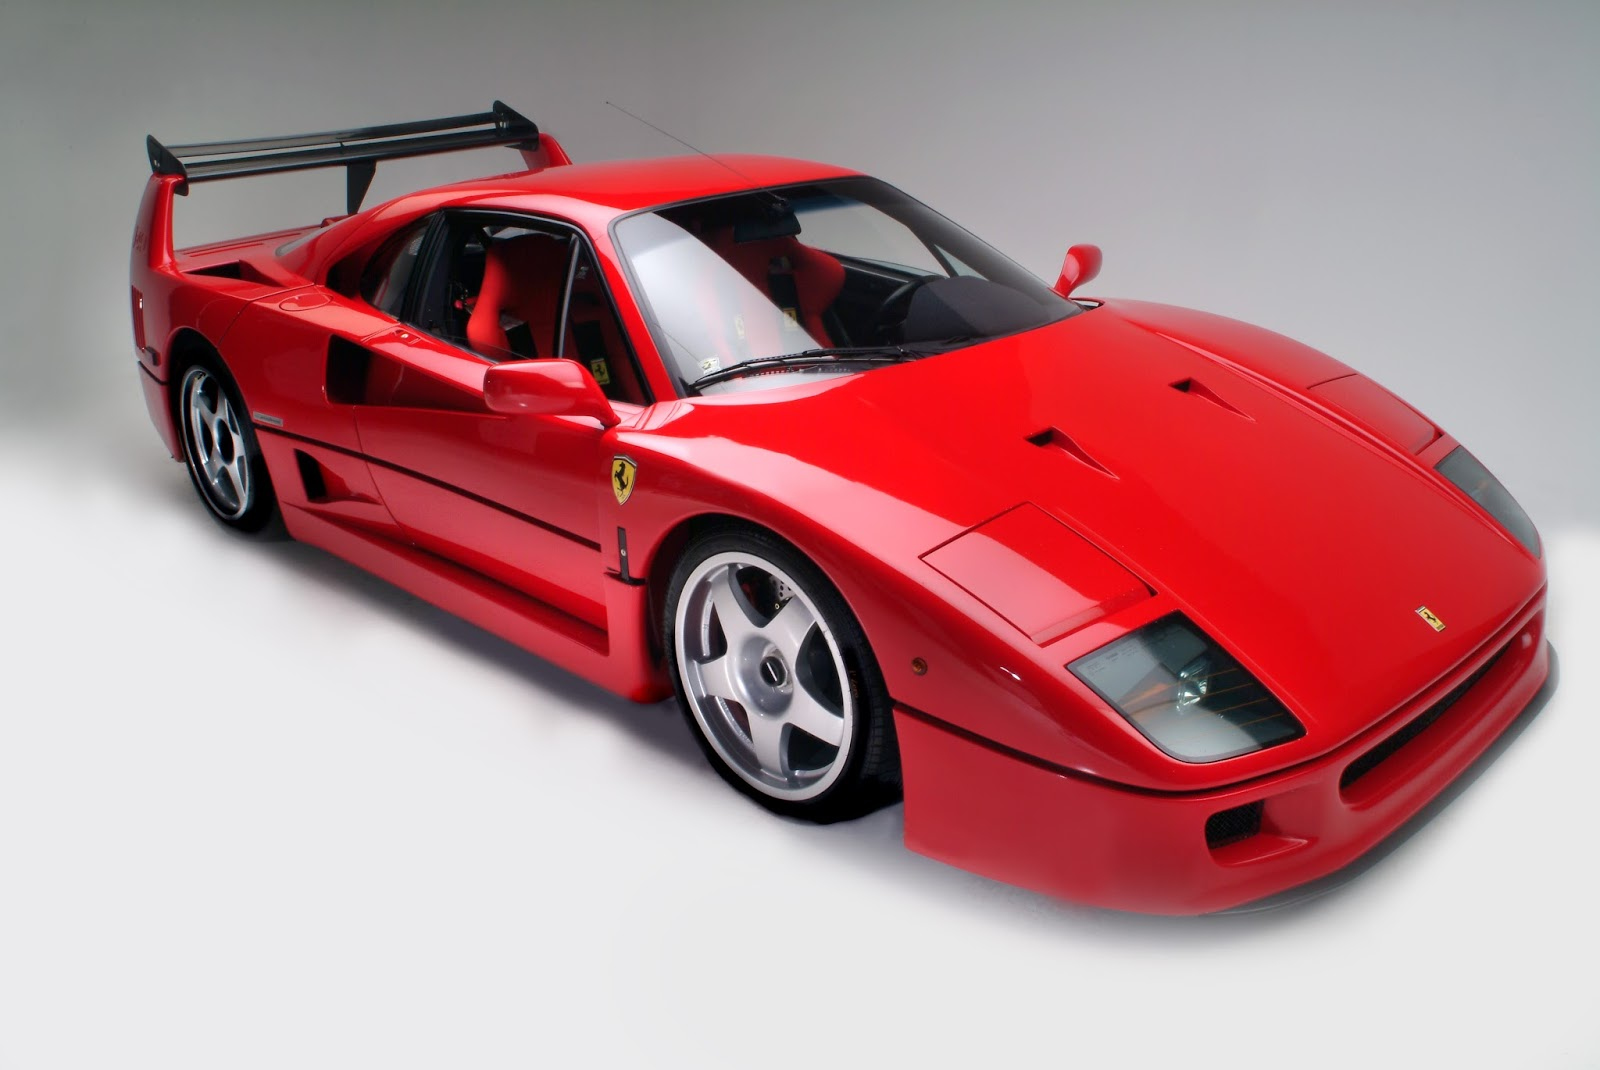 Zr Auto Blog The Ferrari F40 Youve Been Dreaming About Is